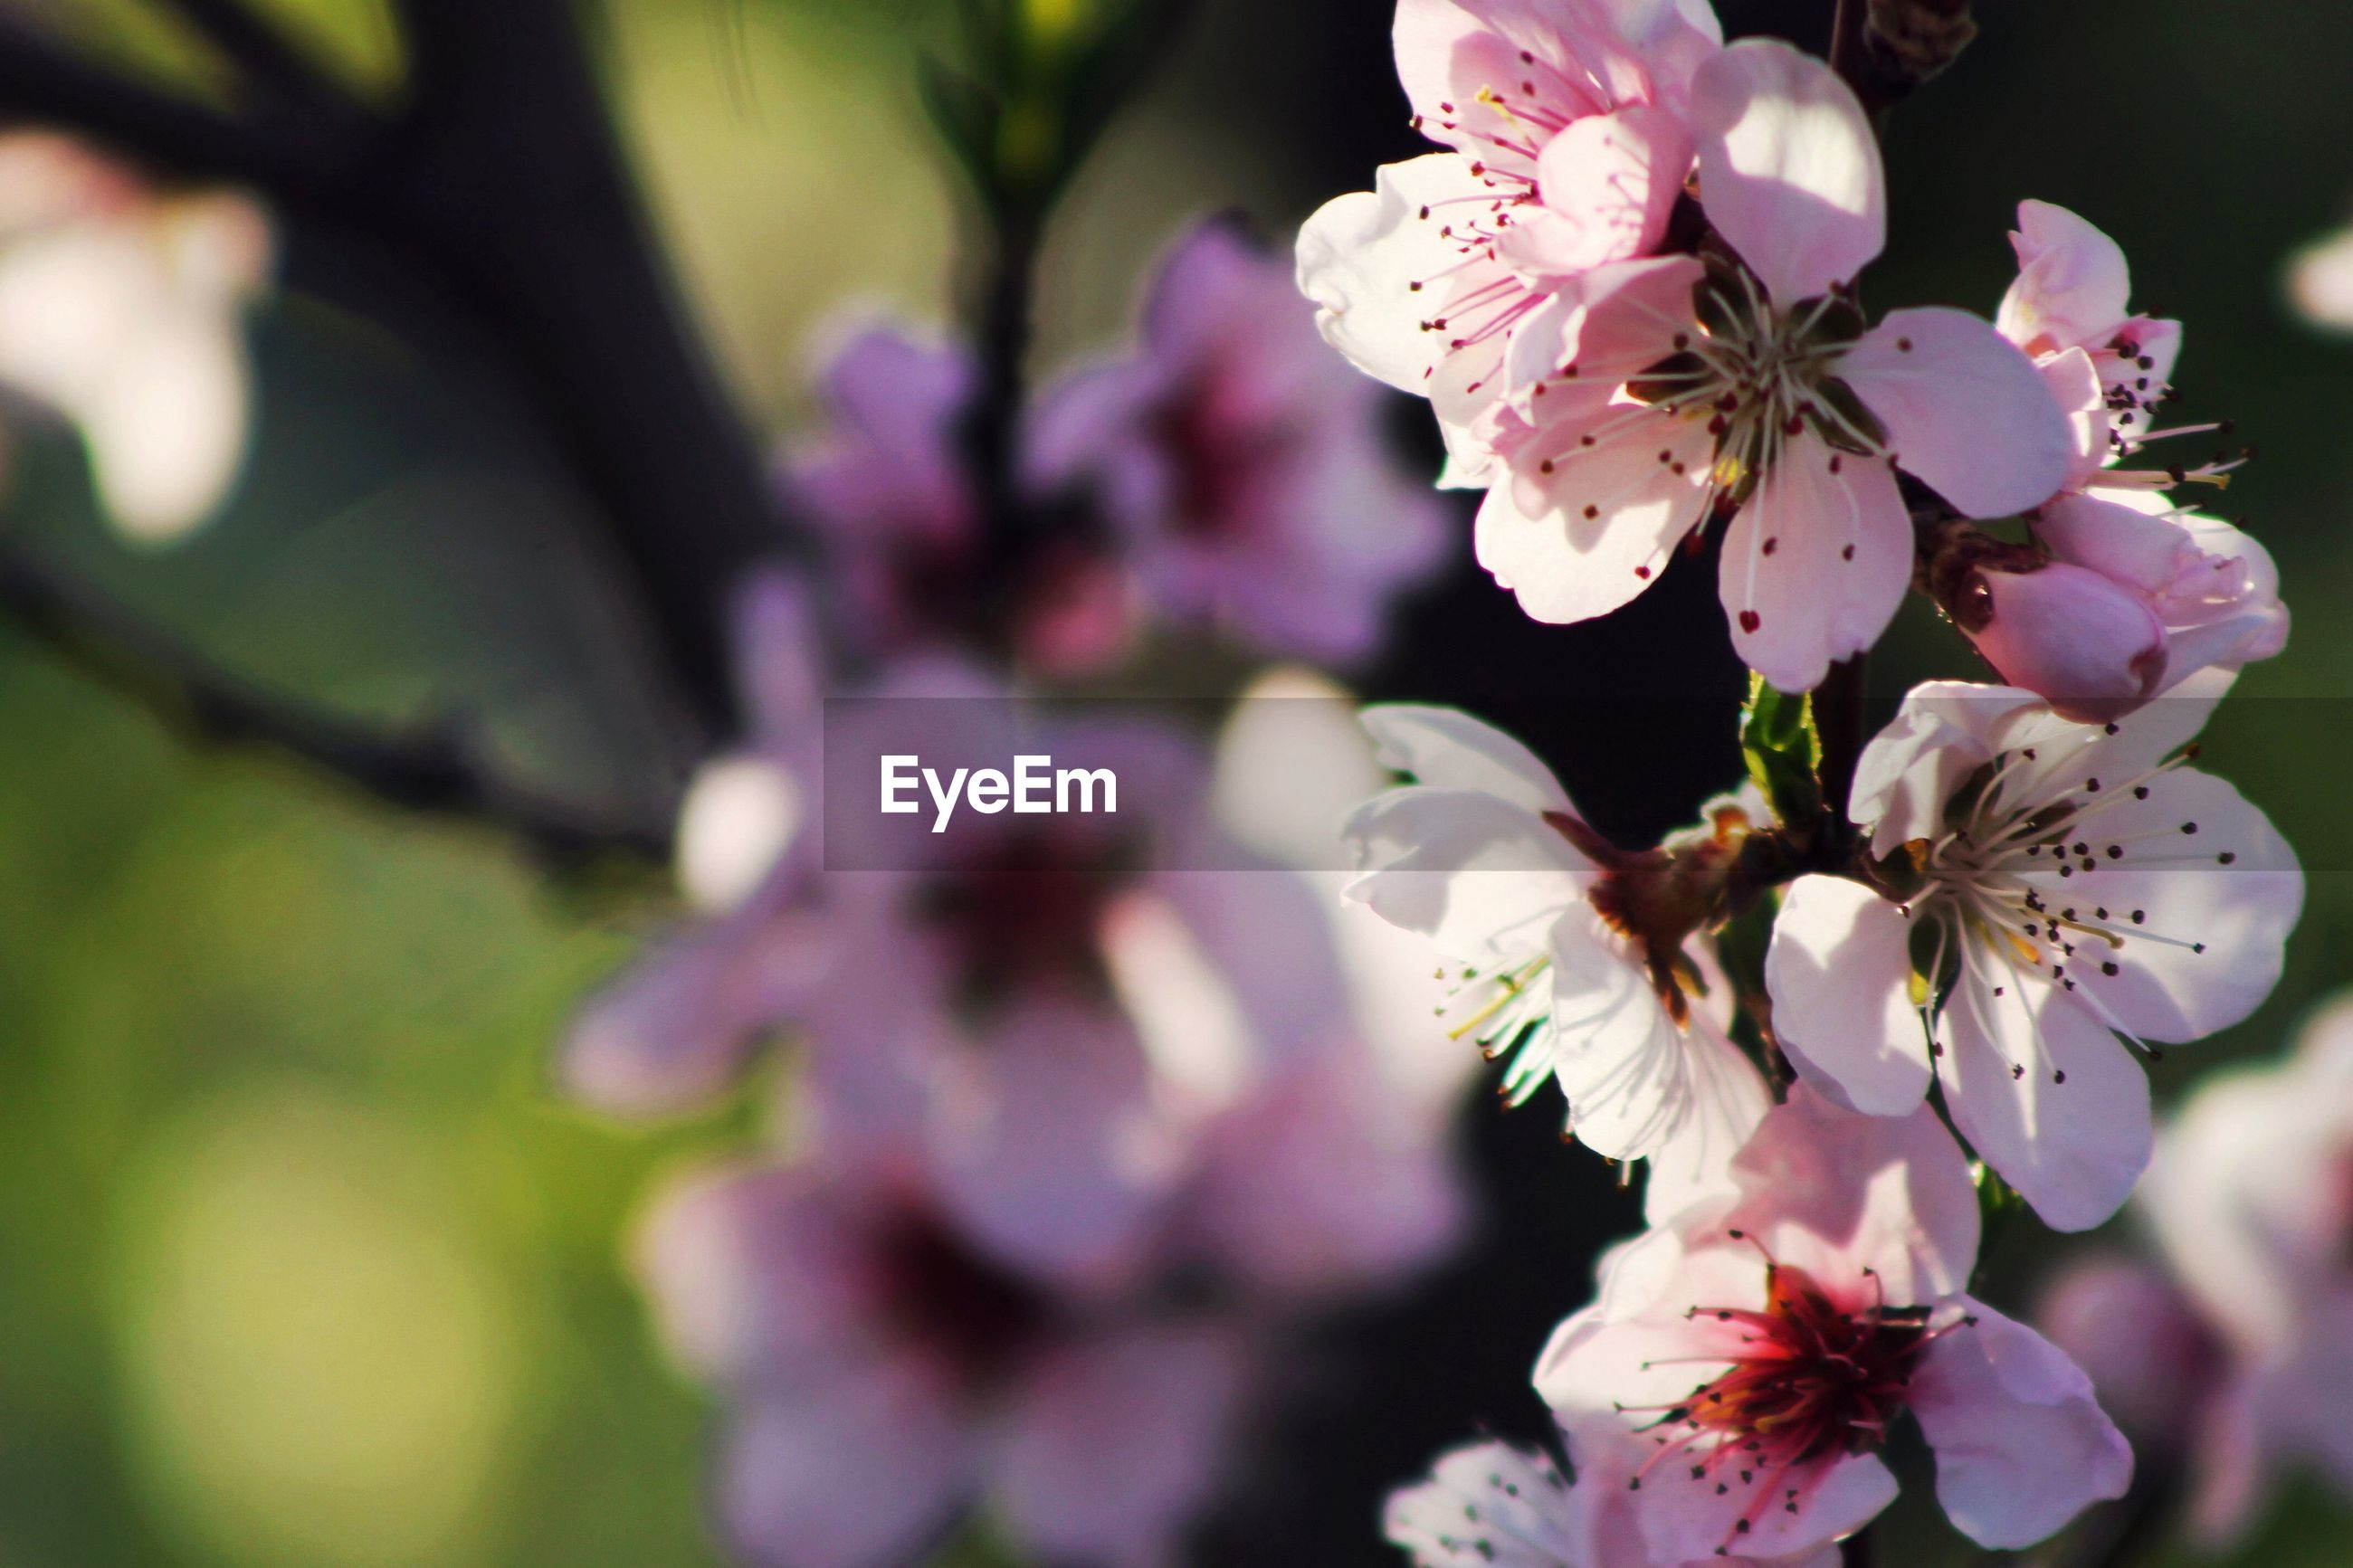 flower, freshness, fragility, growth, focus on foreground, beauty in nature, branch, close-up, petal, nature, cherry blossom, tree, cherry tree, blossom, pink color, in bloom, blooming, twig, flower head, springtime